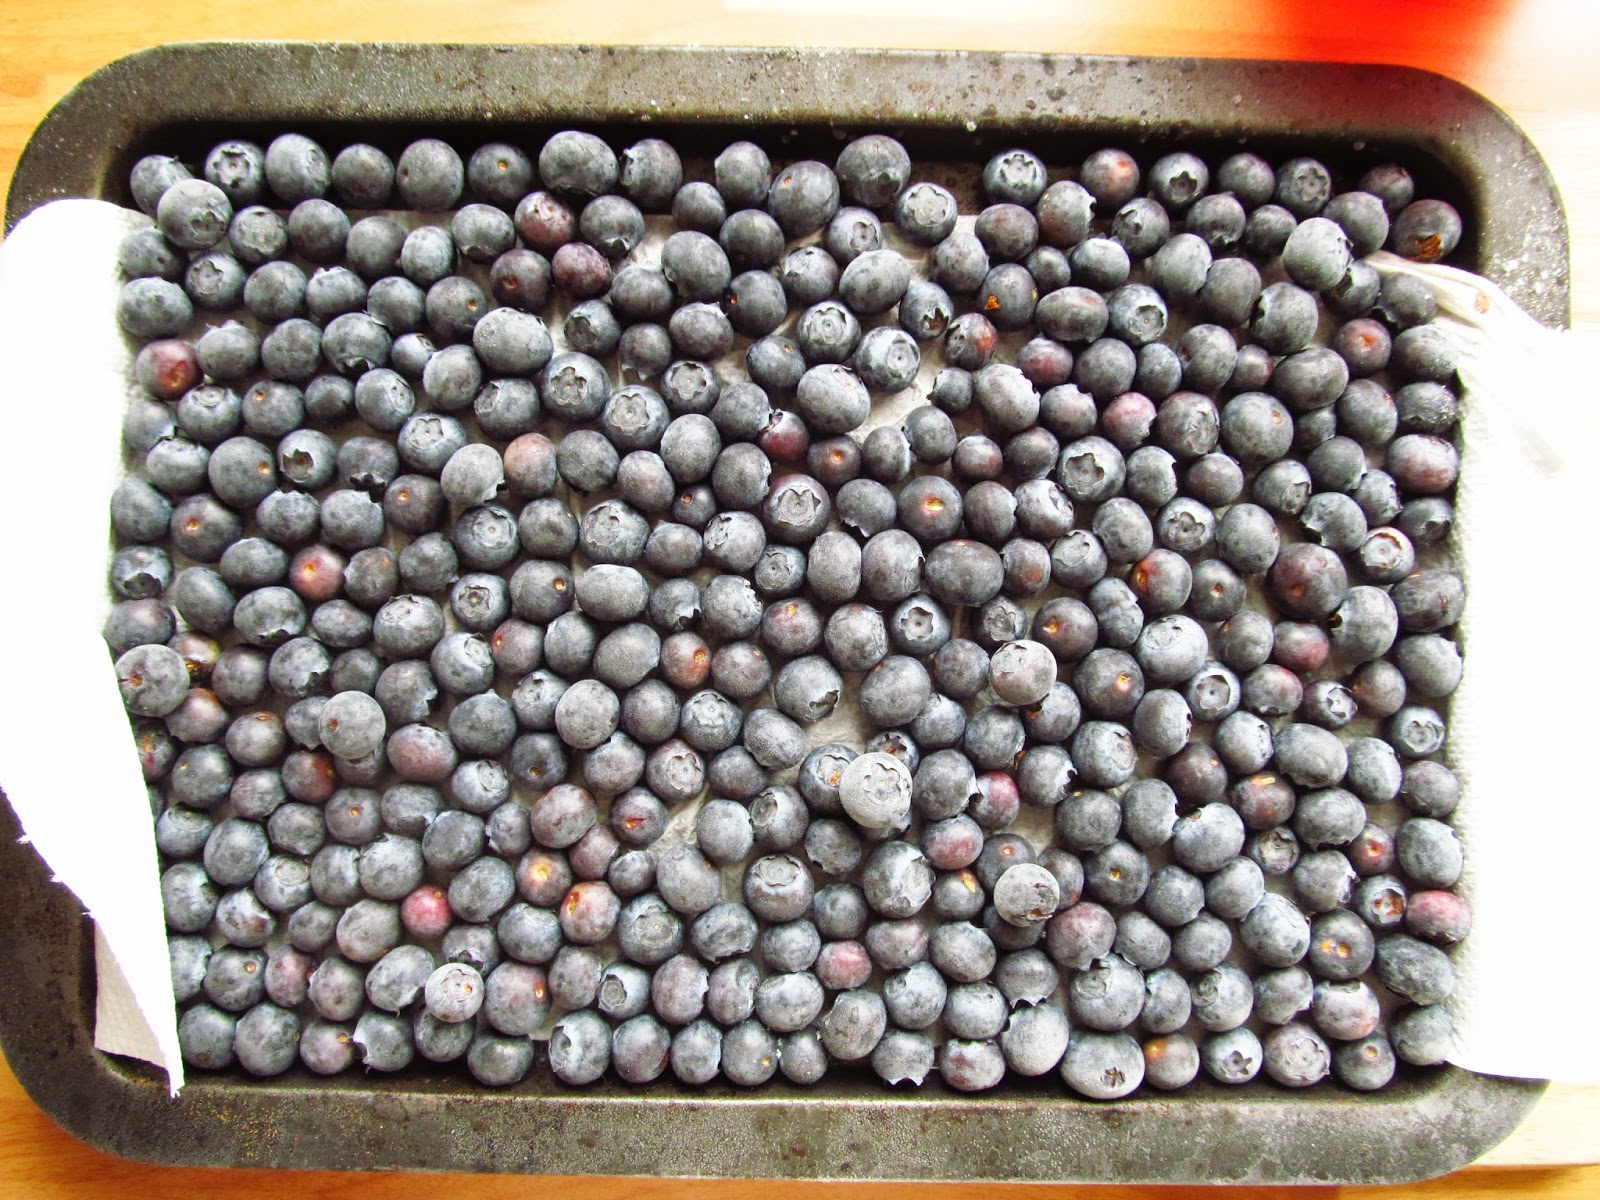 3-blueberries-on-tray-1024x1006.jpg